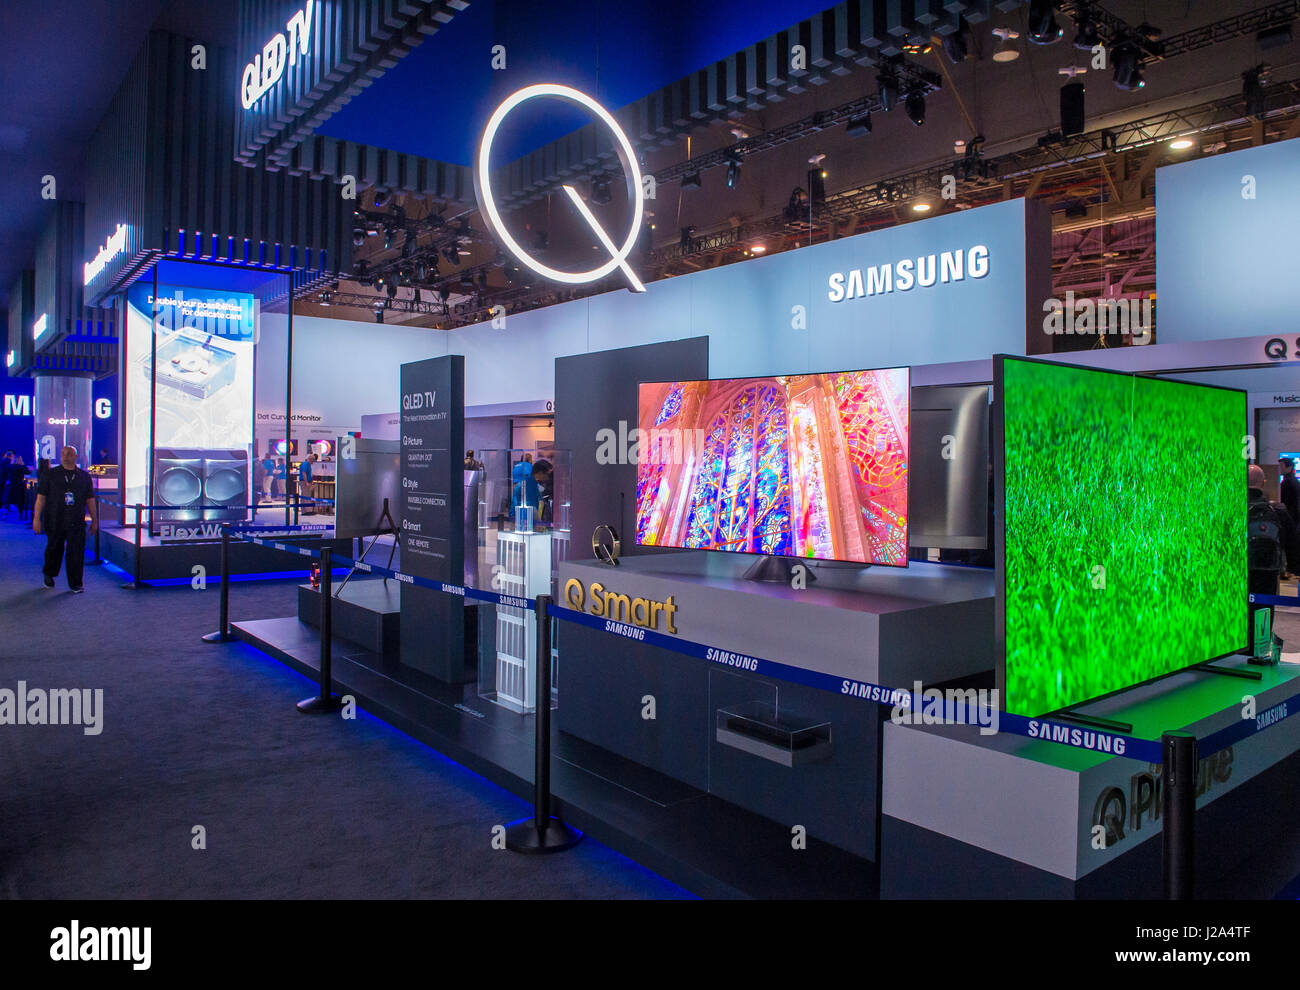 samsung booth ces show held stock photos samsung booth ces show held stock images alamy. Black Bedroom Furniture Sets. Home Design Ideas